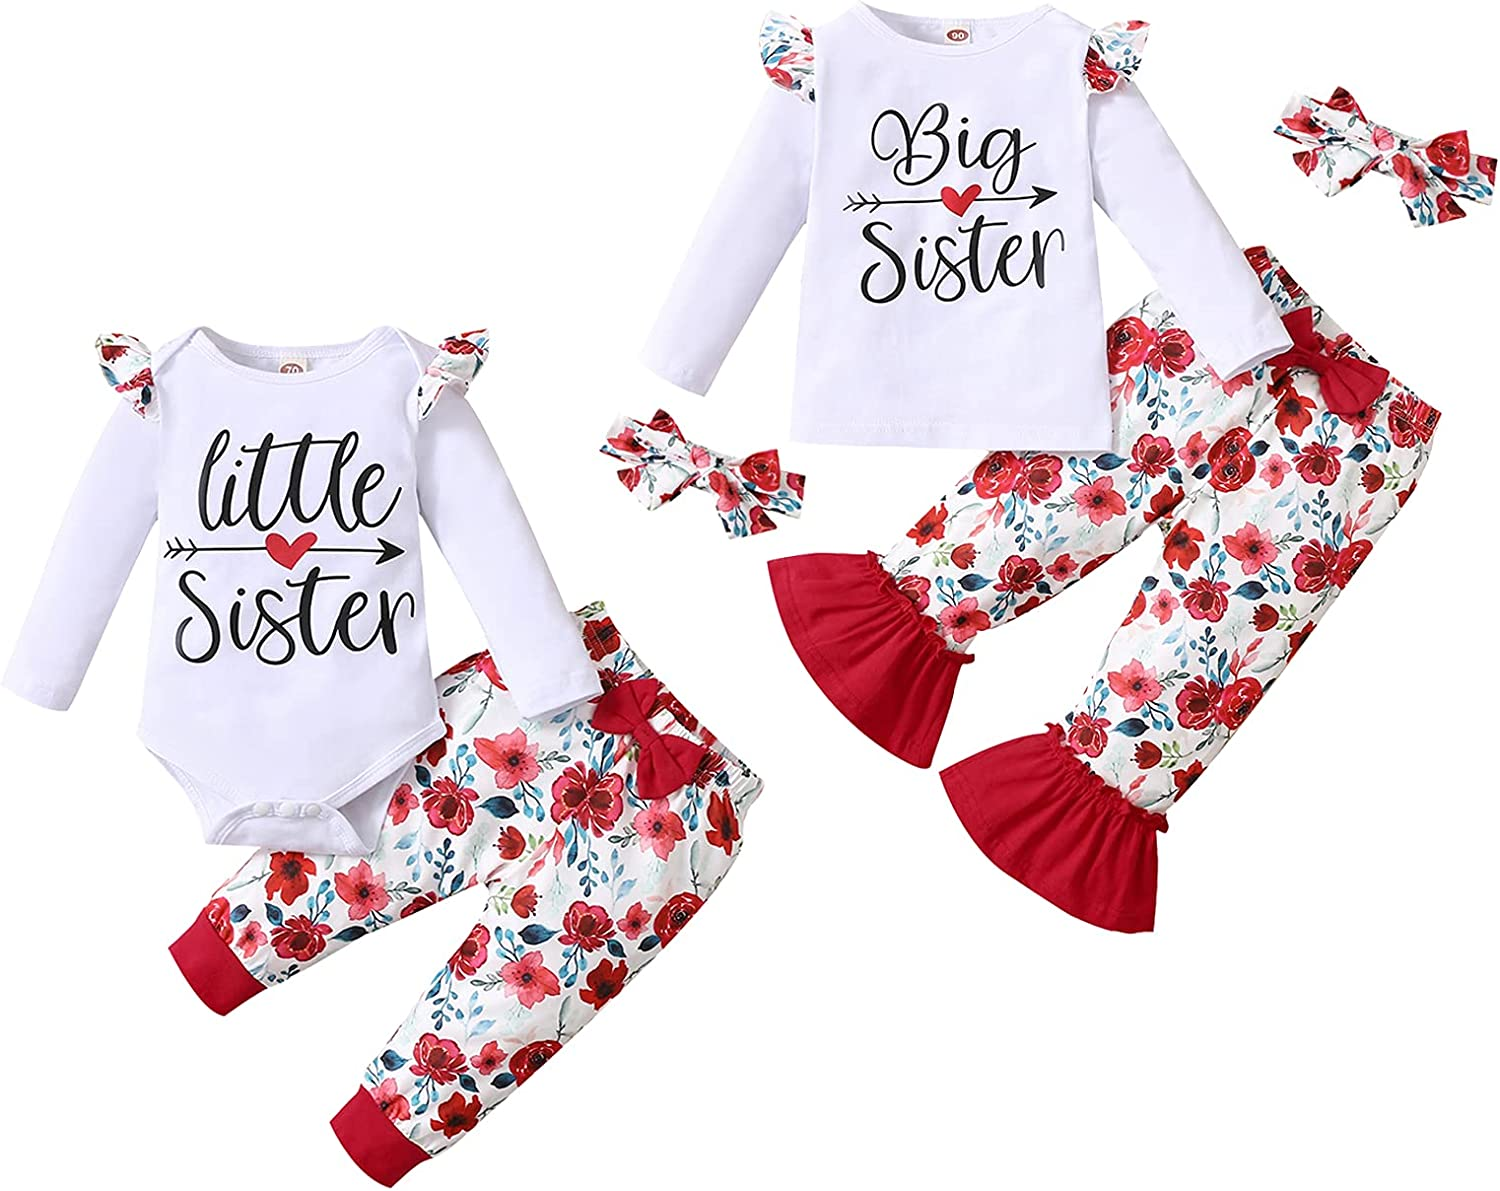 Baby Girl Sister Matching Outfits Little Big Sister Letter Ruffle Romper Top+Floral Pants+Headband 3Pcs Clothes